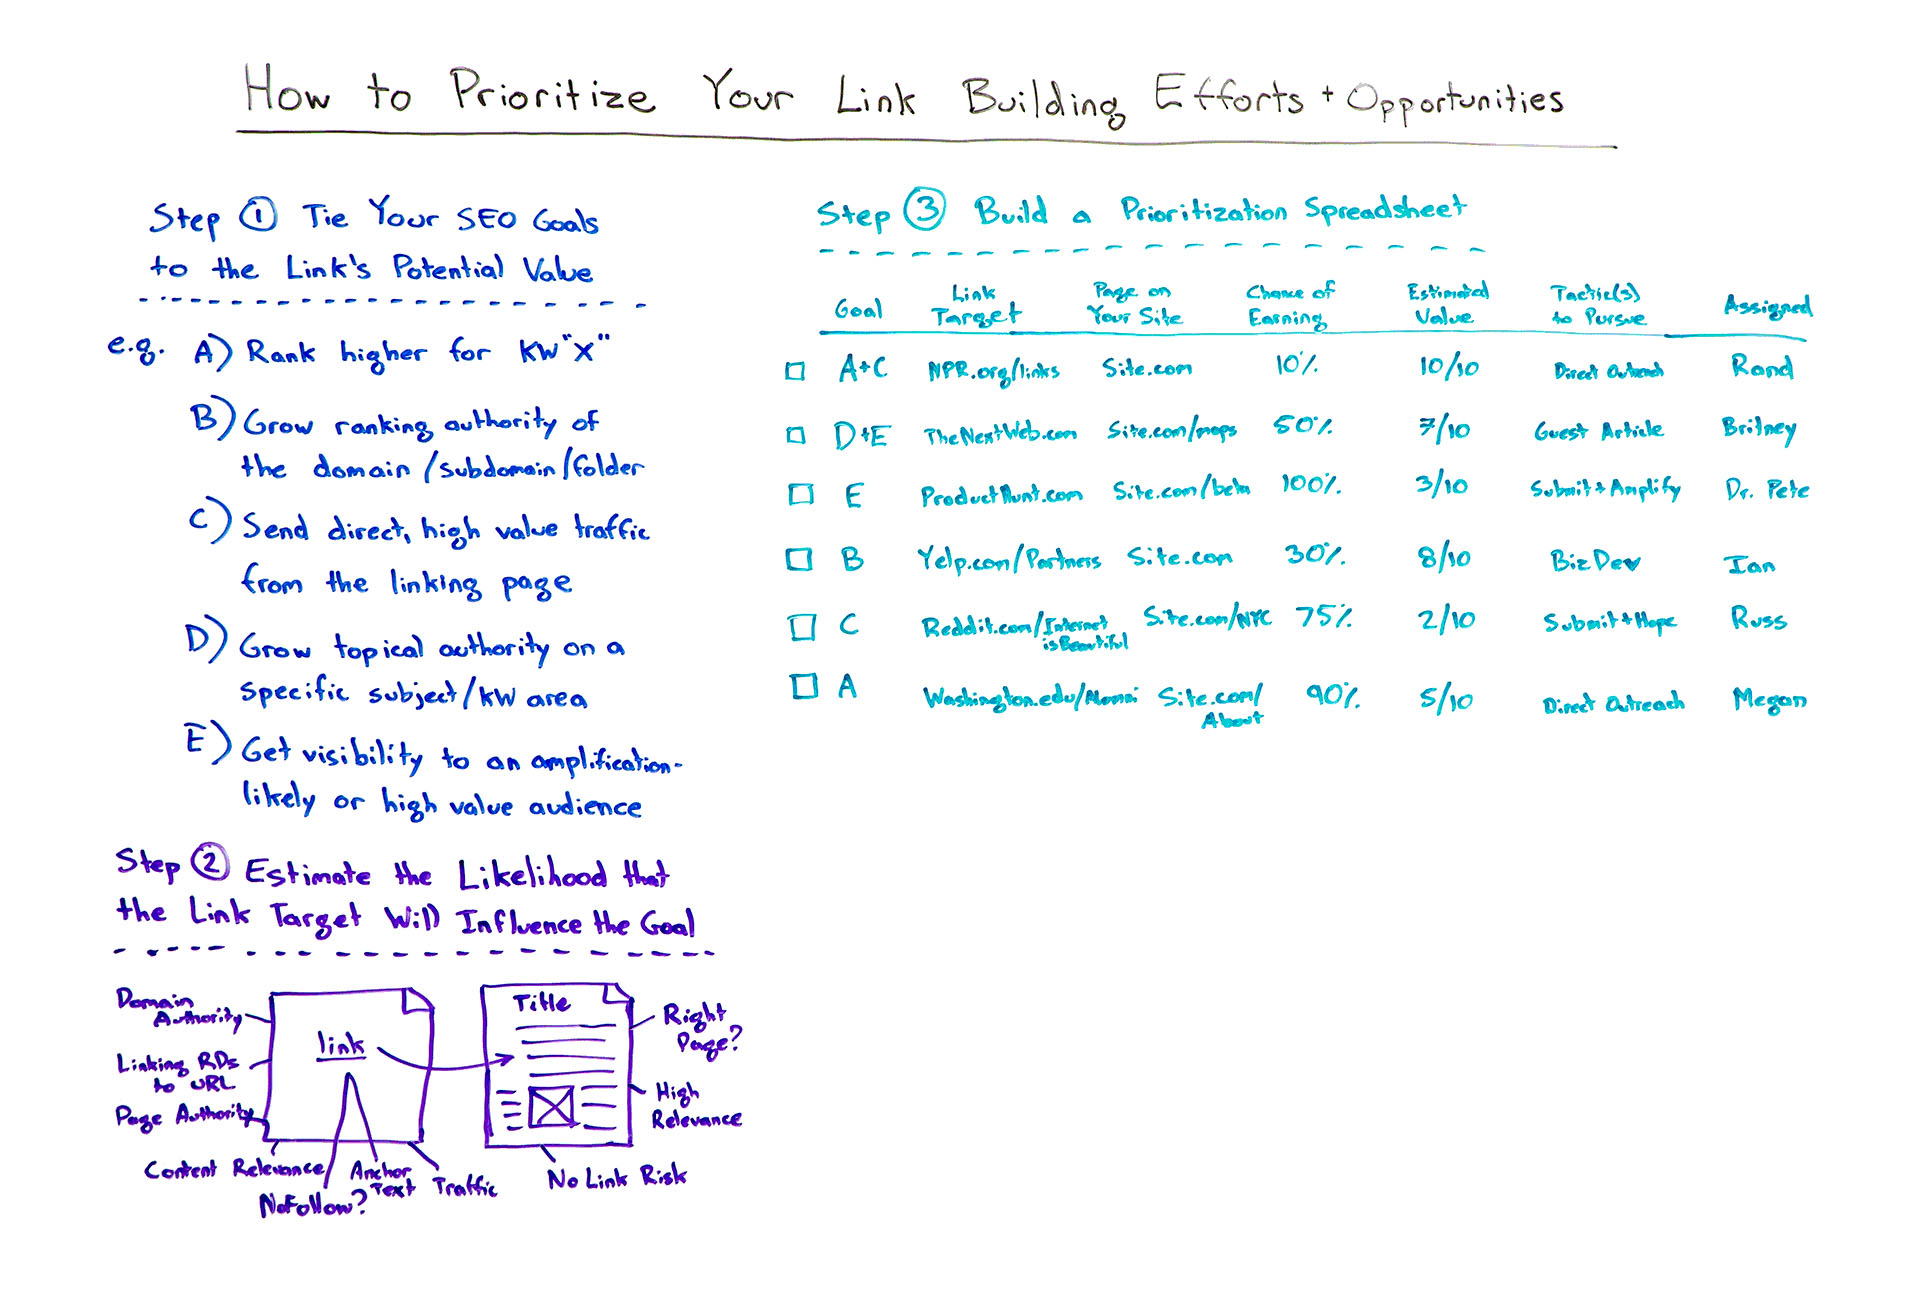 How to Prioritize Your Link Building Efforts & Opportunities — Best of Whiteboard Friday